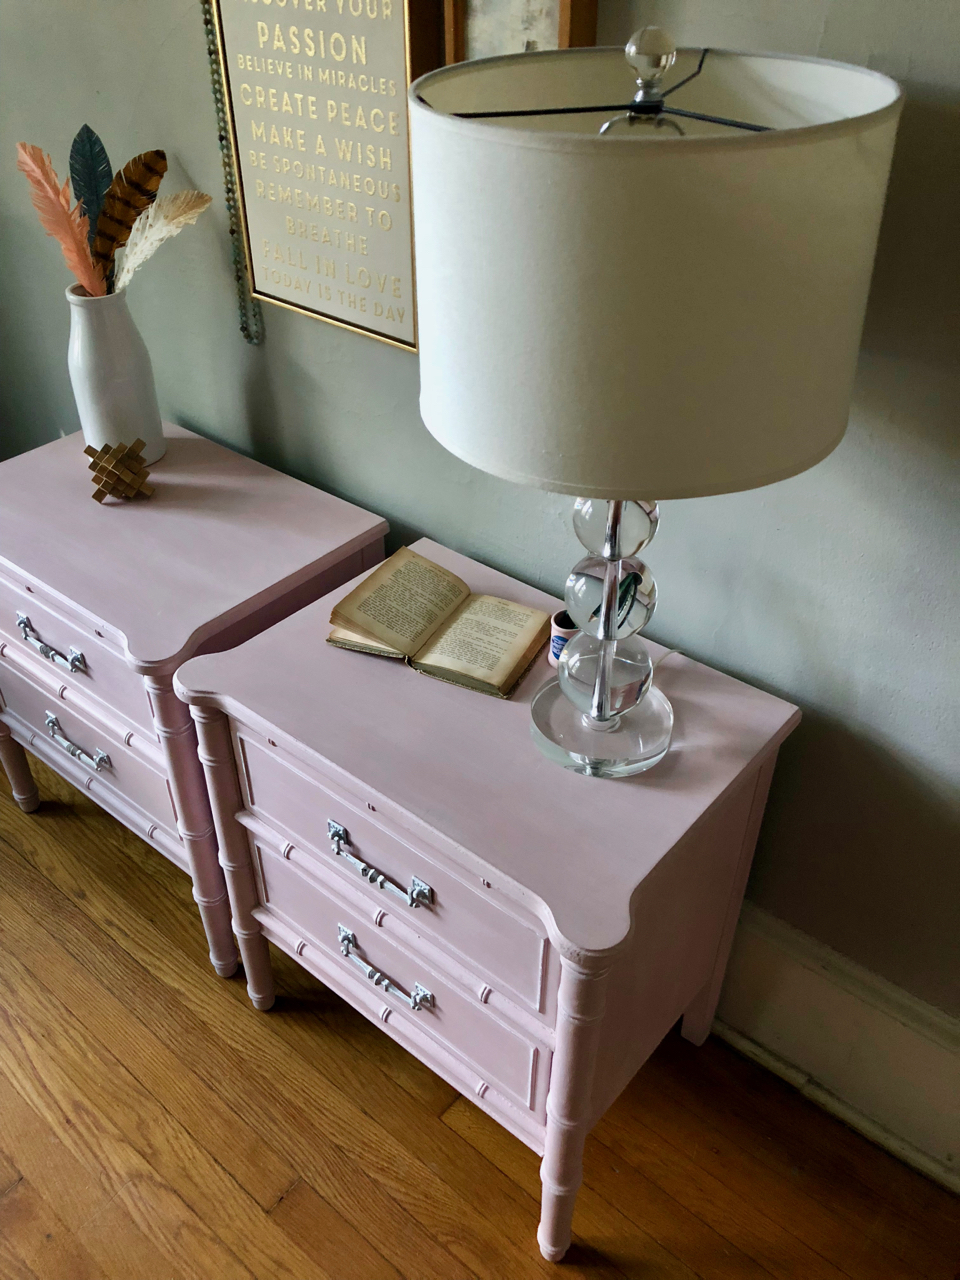 jo-torrijos-atlanta-painted-furniture-annie-sloan-antoinette-blush-pink-nightstands-9.jpg